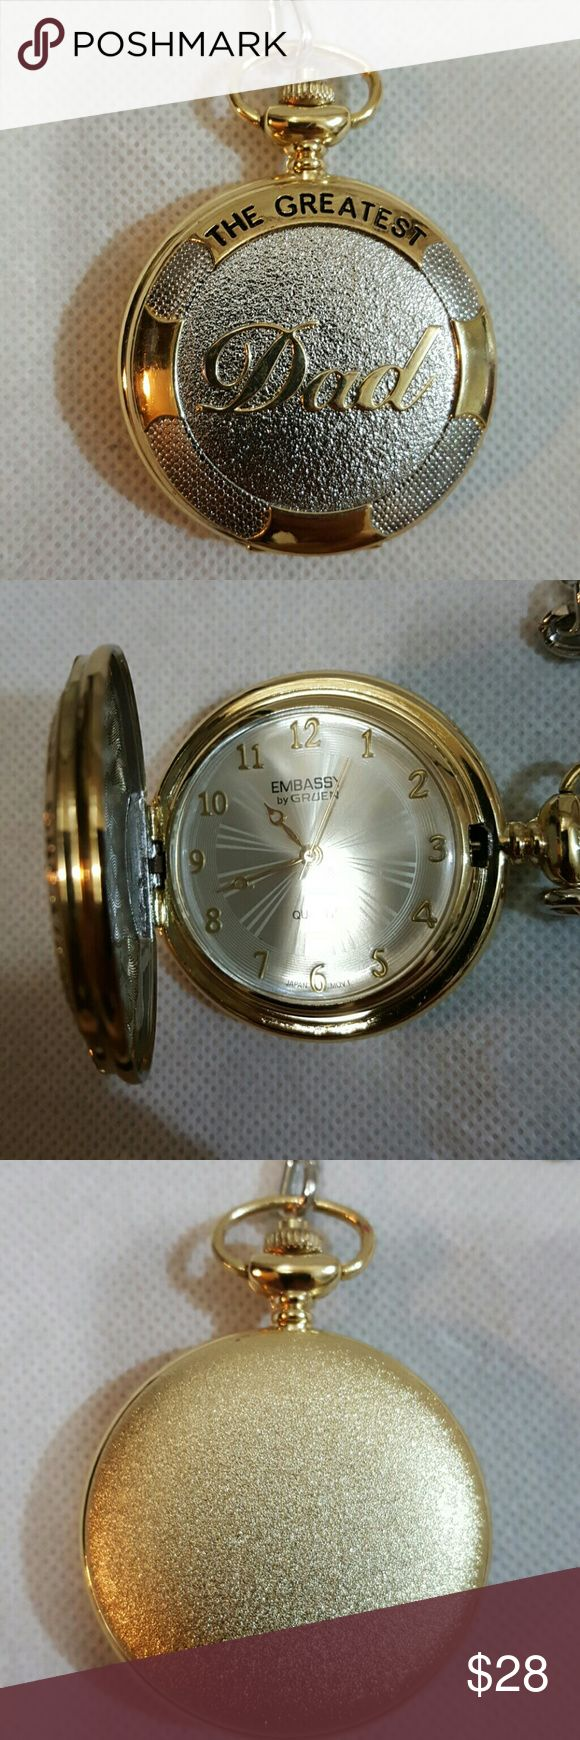 """WORLD'S GREATEST DAD POCKET WATCH Never used purchased it and it did NOT Have a battery in it.  Gold and silver with inscribed on front """"WORLD'S GREATEST DAD""""  WITH SILVER POCKET CHAIN.  Great gift or just because for DAD!!!! 💖💖💖 Gruen  Accessories Watches"""